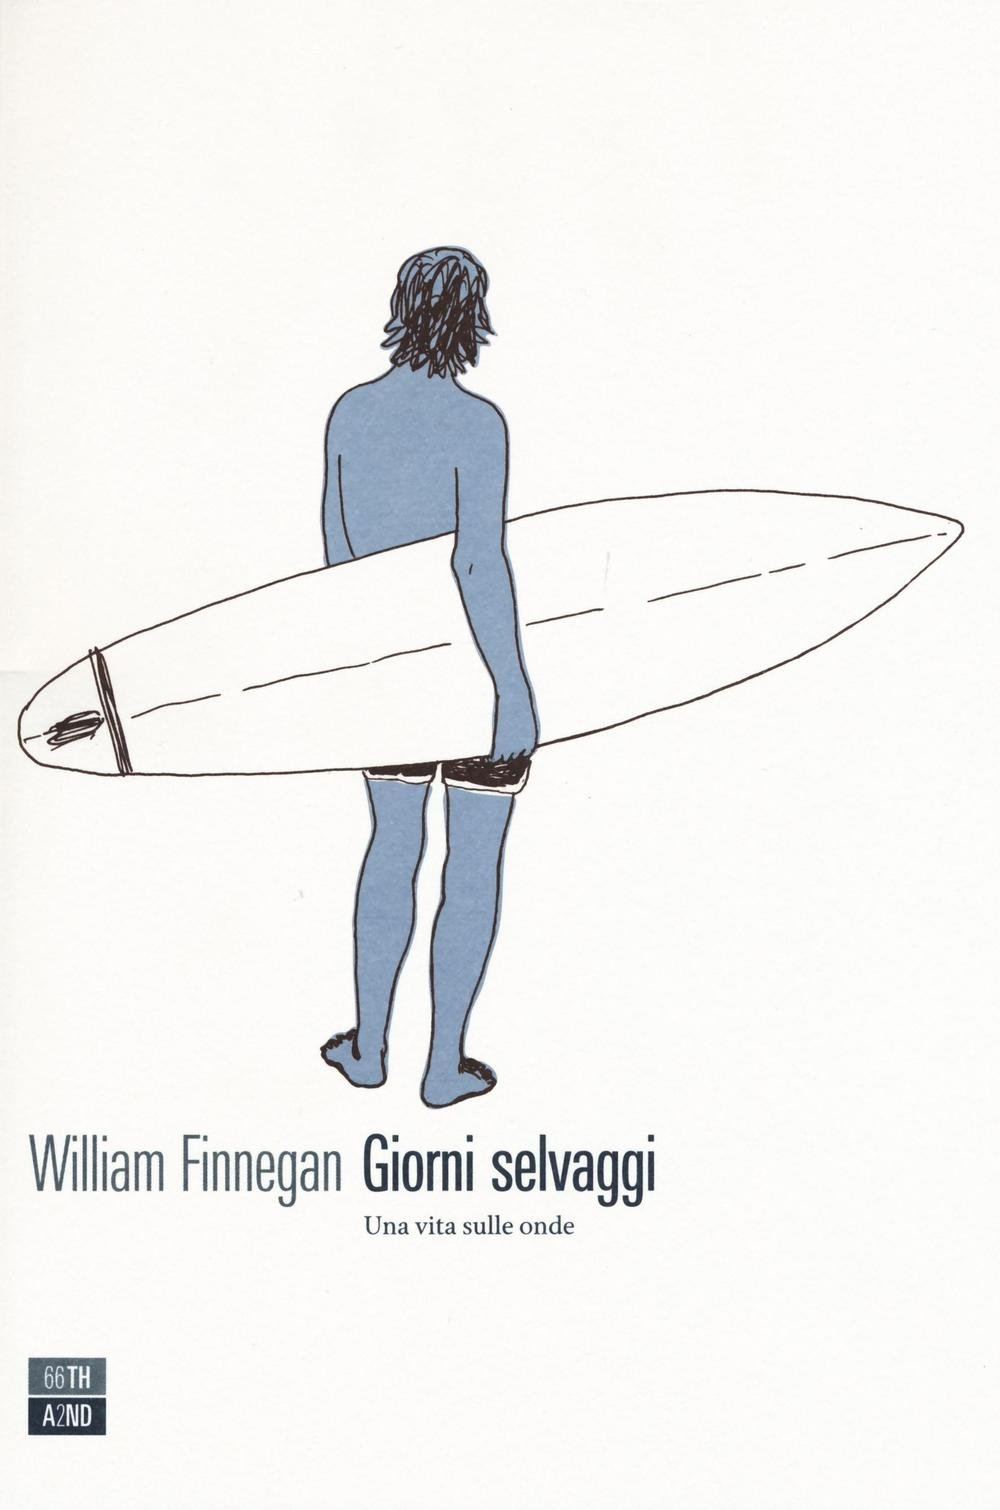 Giorni Selvaggi di William Finnegan 1 Iyezine.com